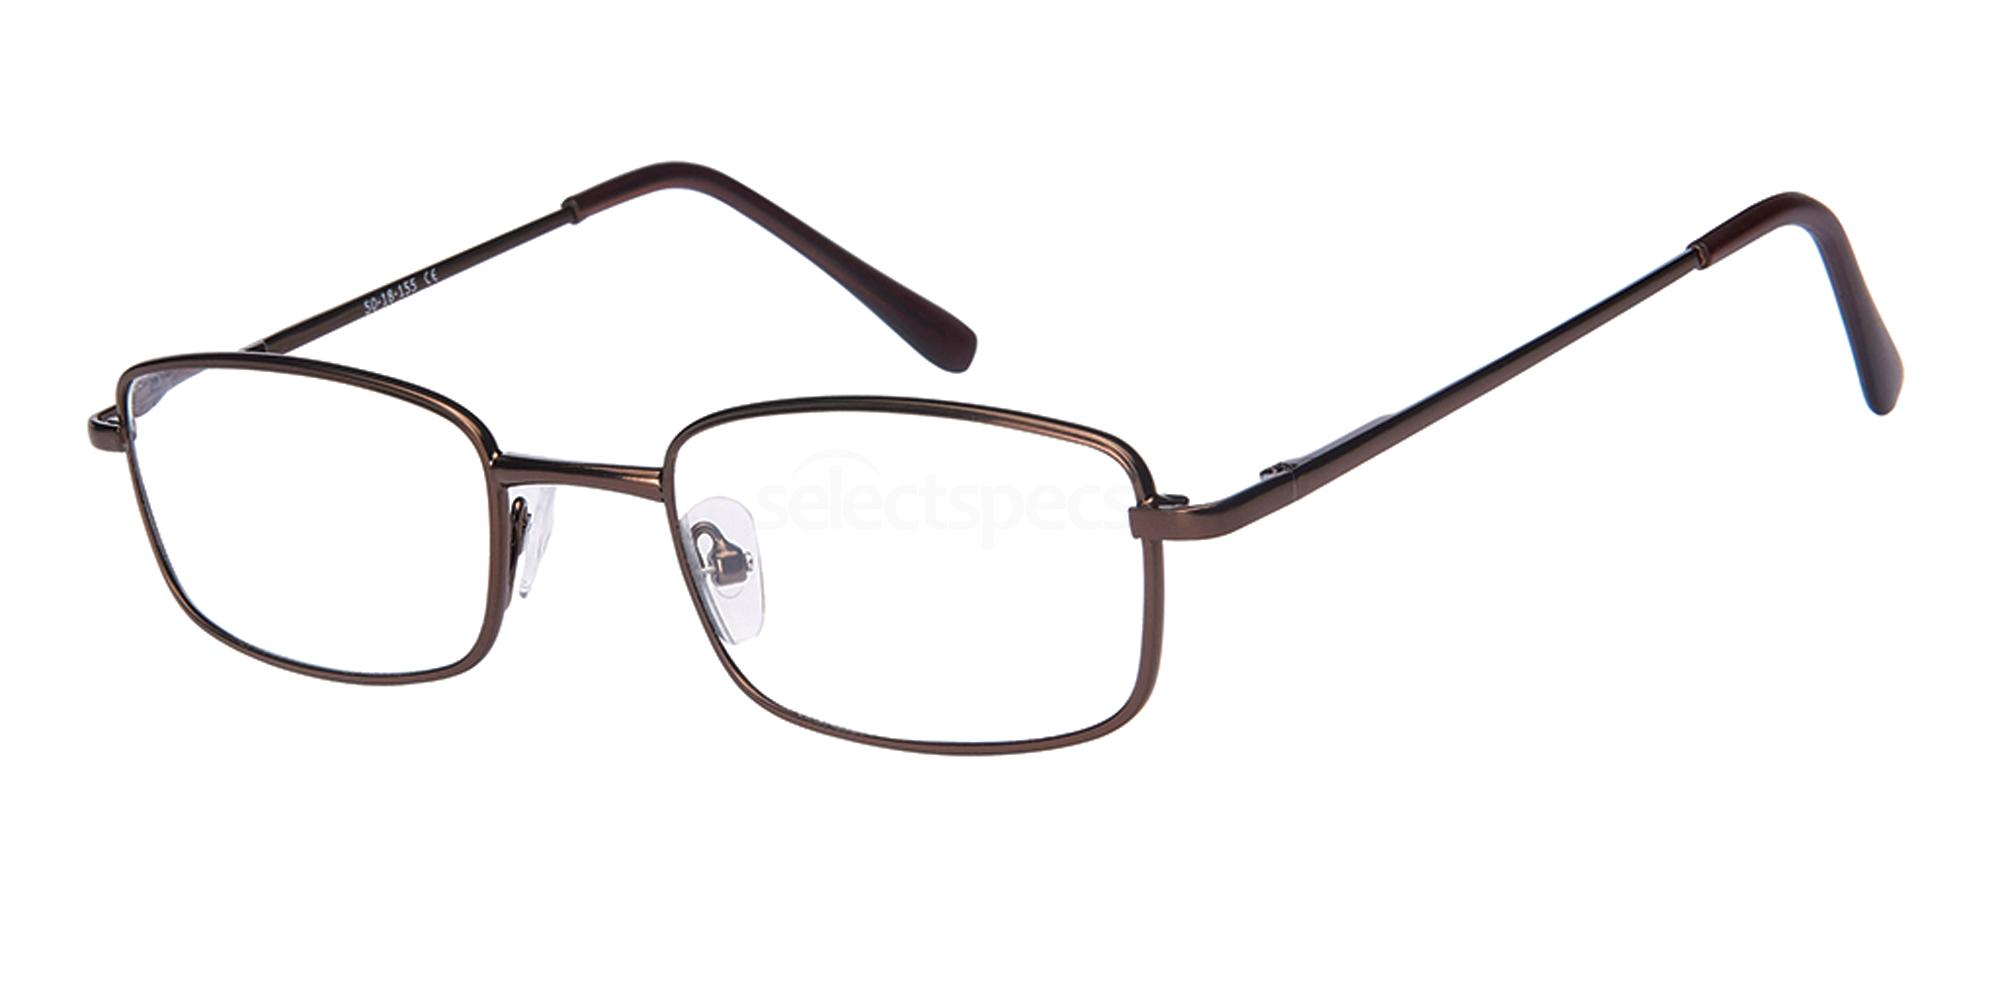 +3.00 Power Readers R21A - A: Brown Accessories, Univo Readers